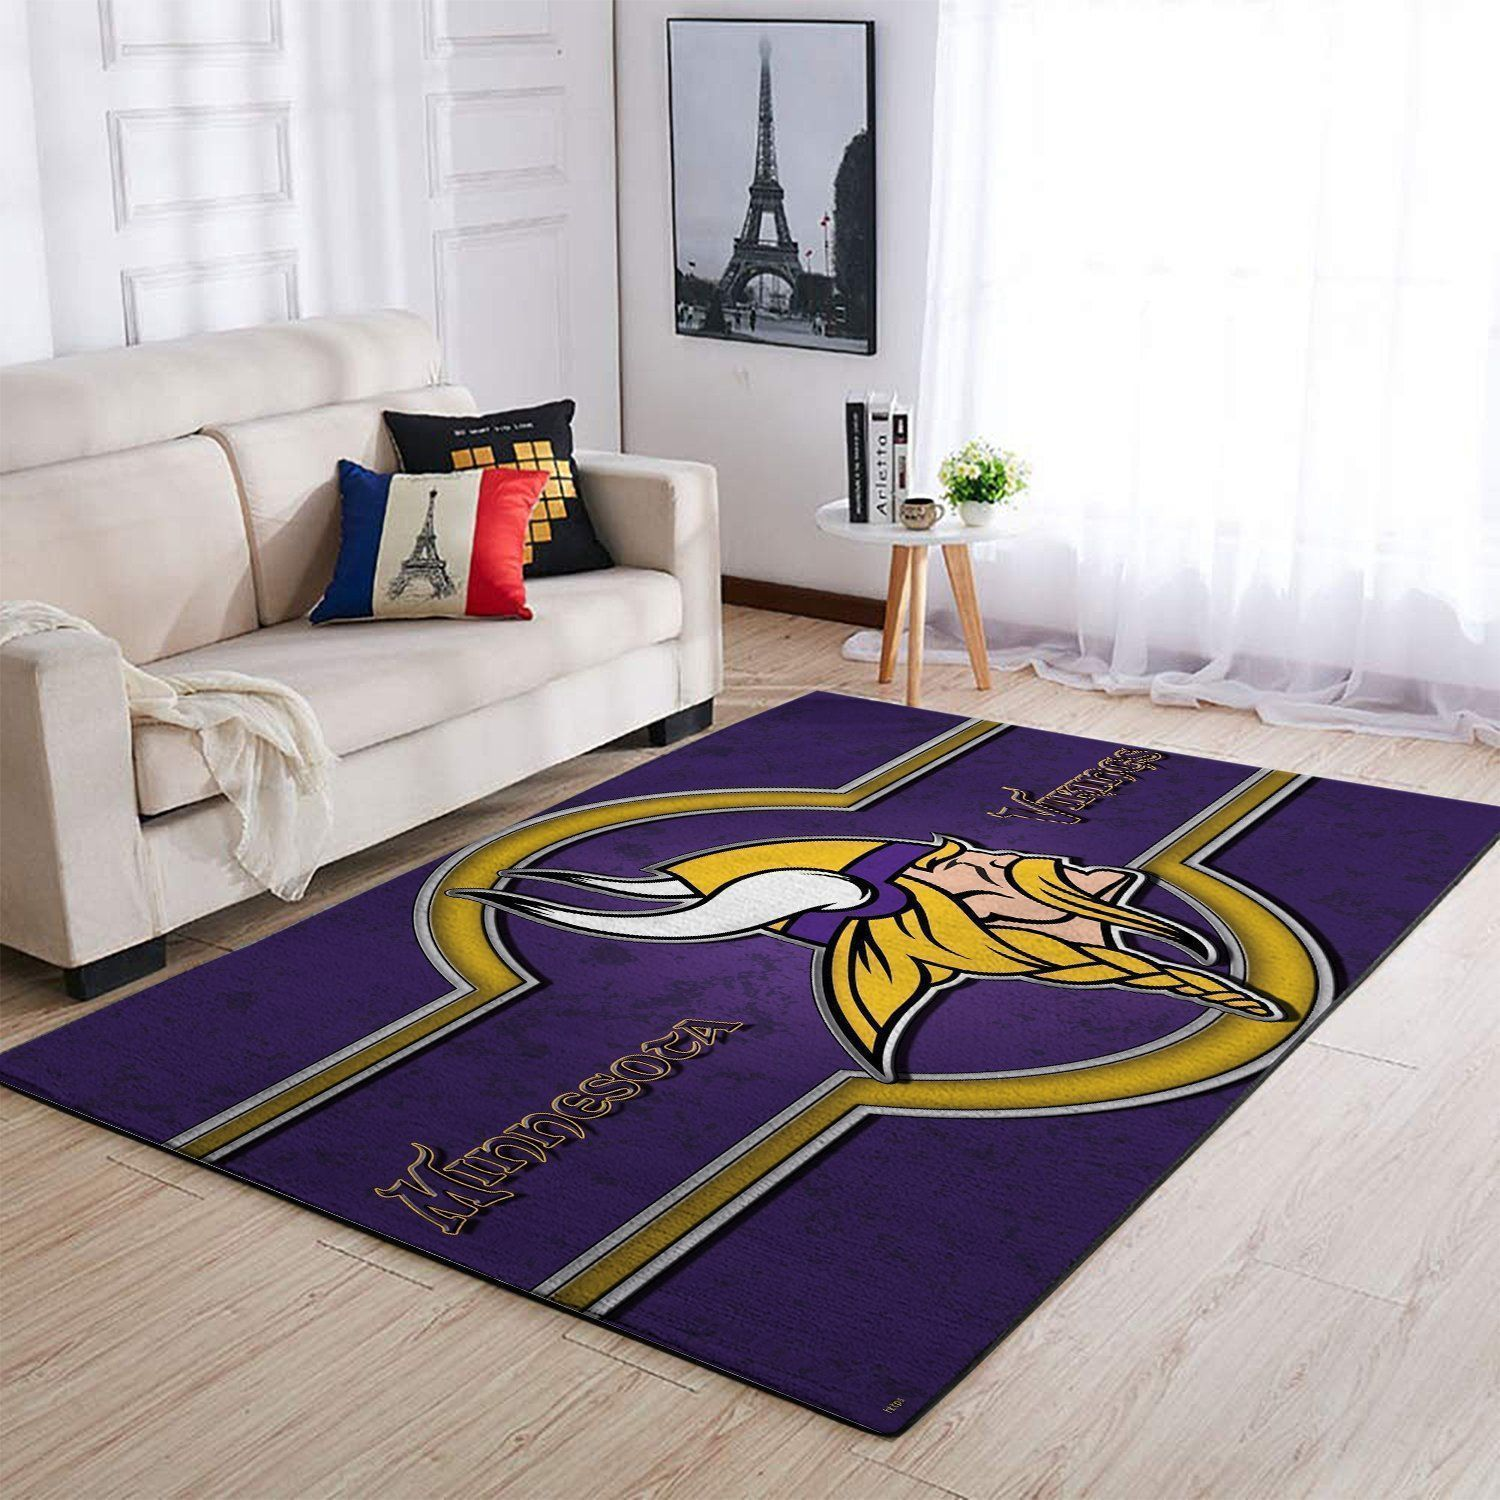 Minnesota Vikings Area Rugs NFL Football Living Room Carpet Team Logo Custom Floor Home Decor 1910073